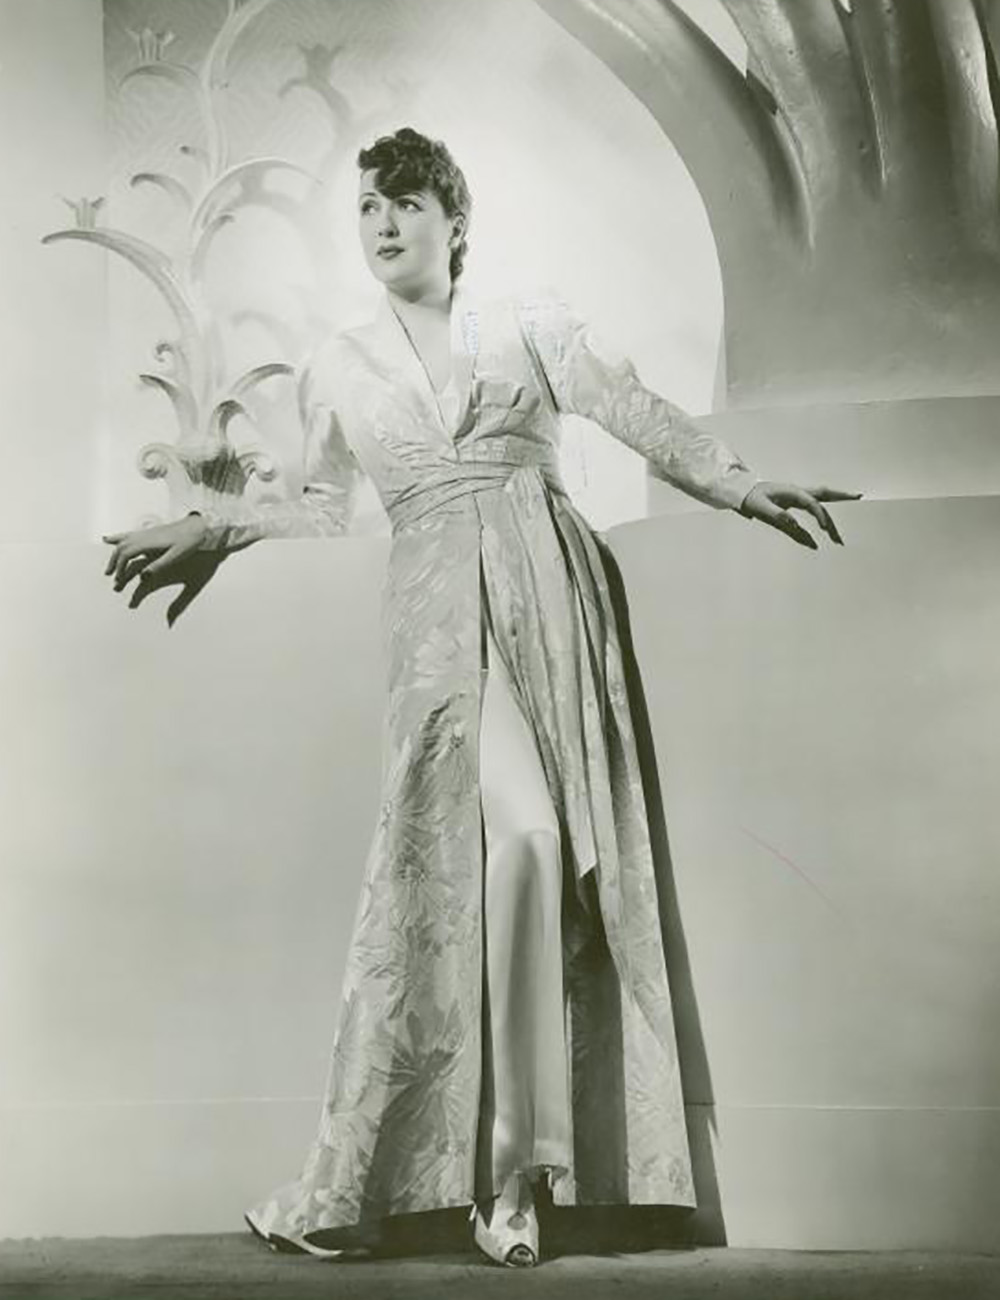 publicity photo of Gypsy Rose Lee in a dressing gown for the 1938 film, Sally, Irene, and Mary